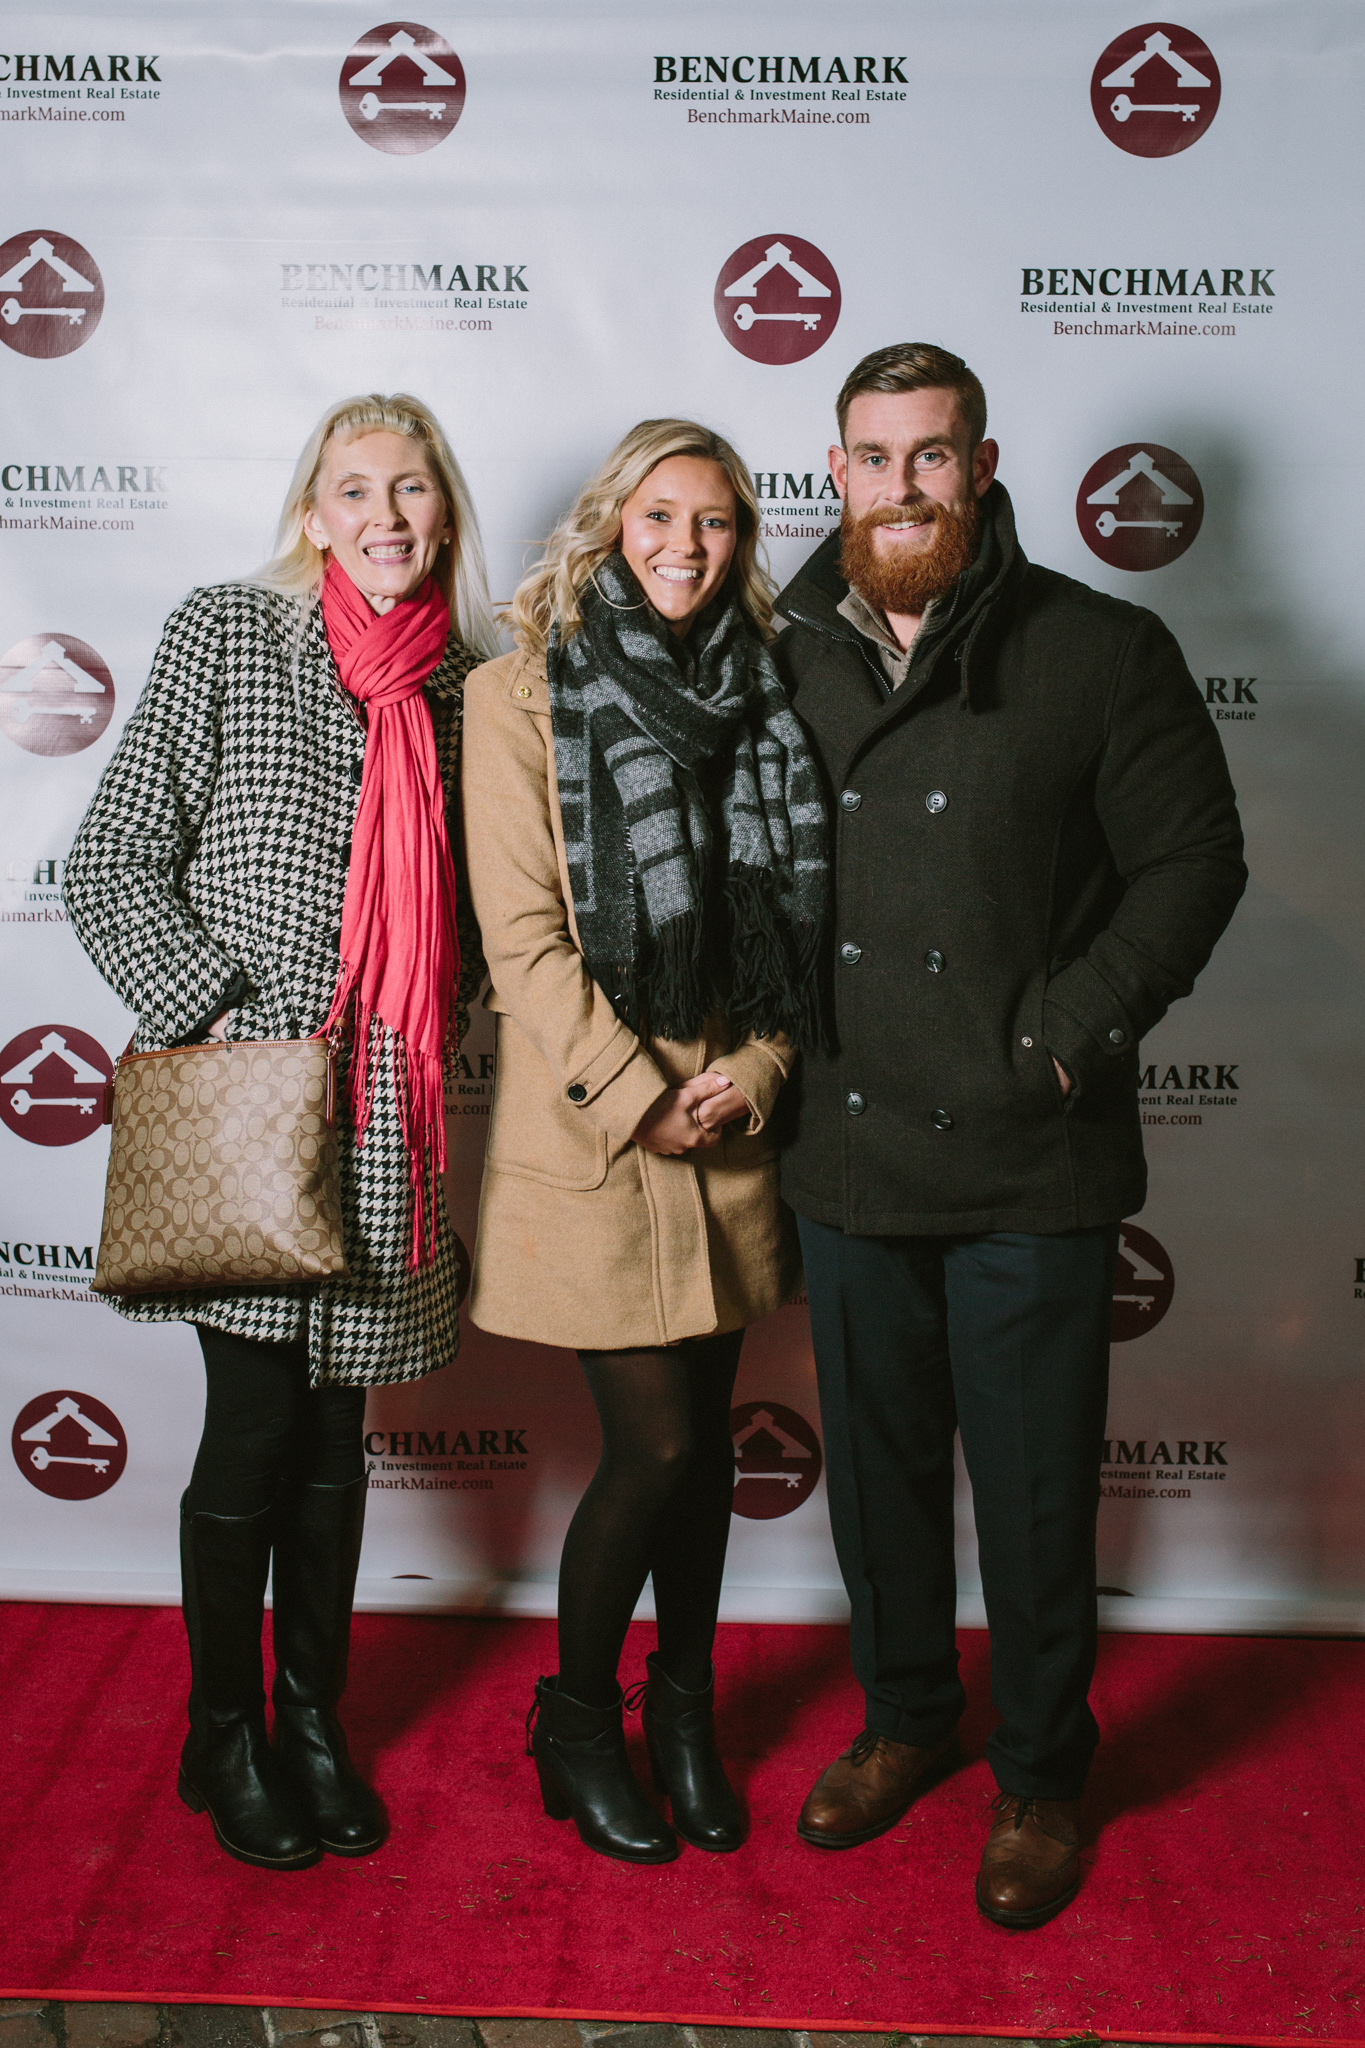 Benchmark_Holiday_Party_SR-010.jpg